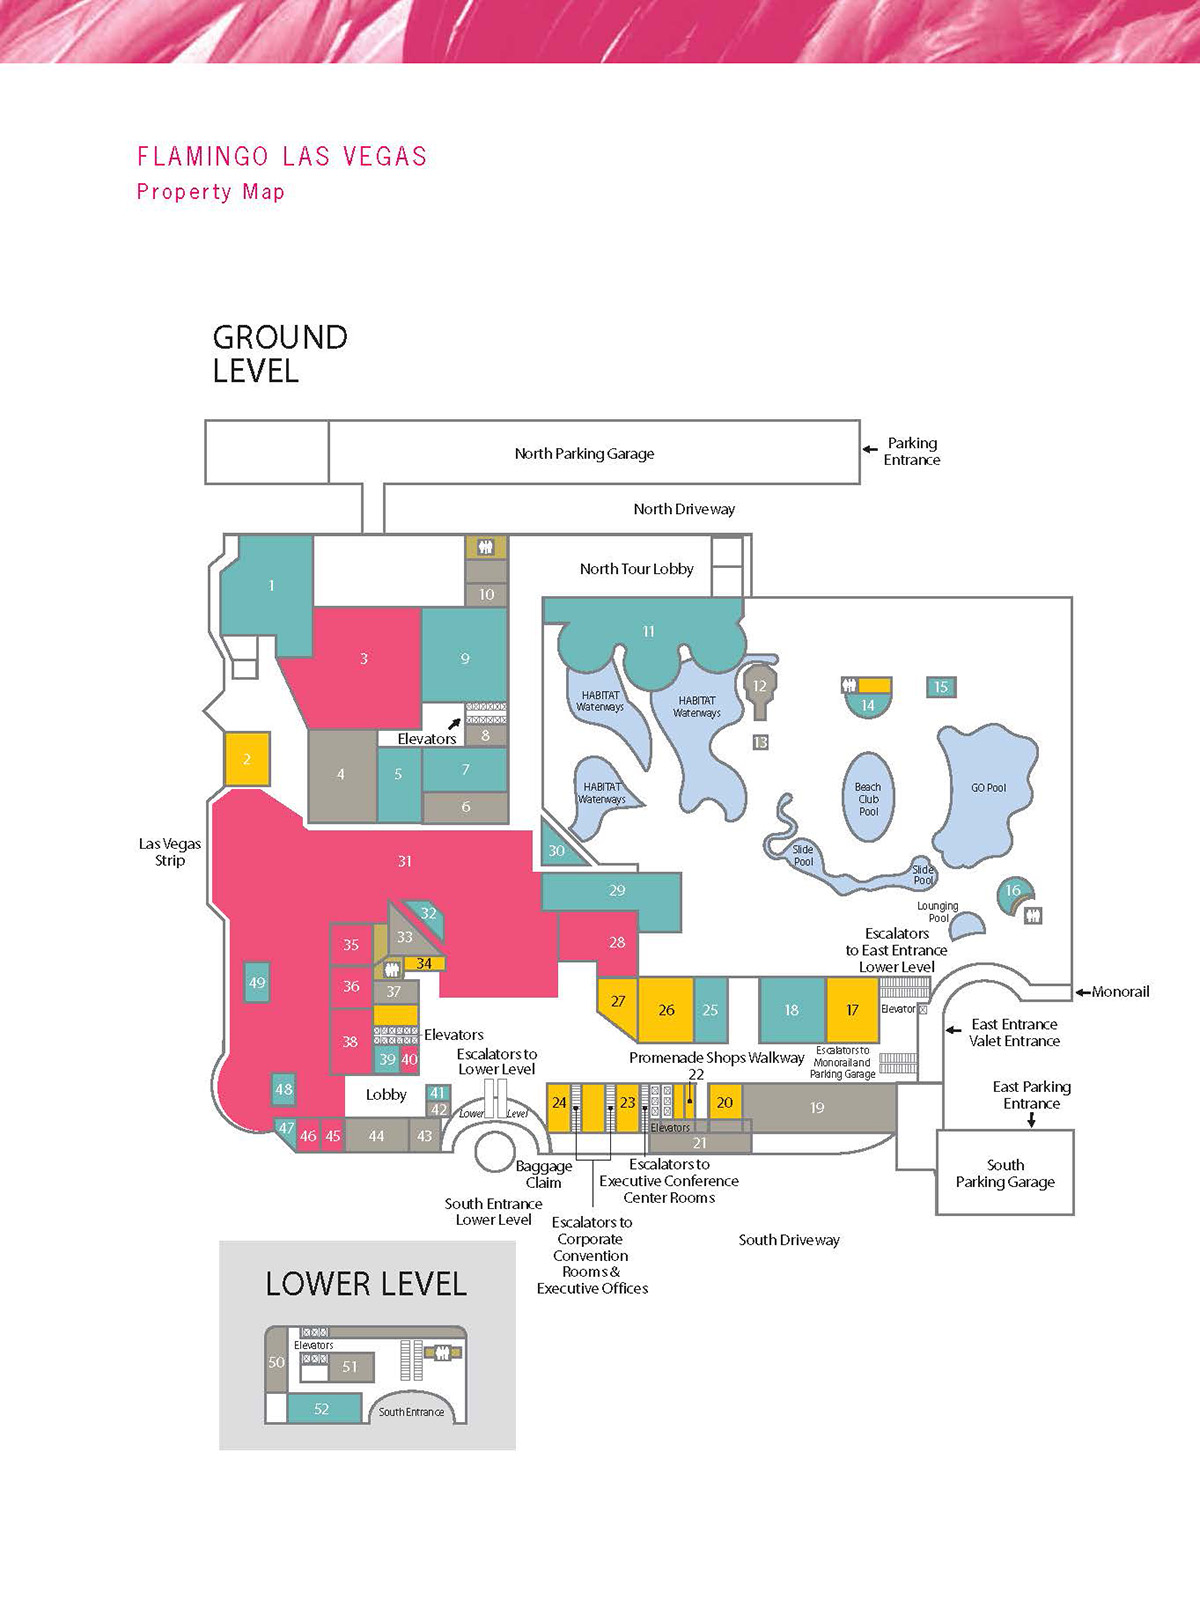 Flamingo Hotel Facility Map - Las Vegas